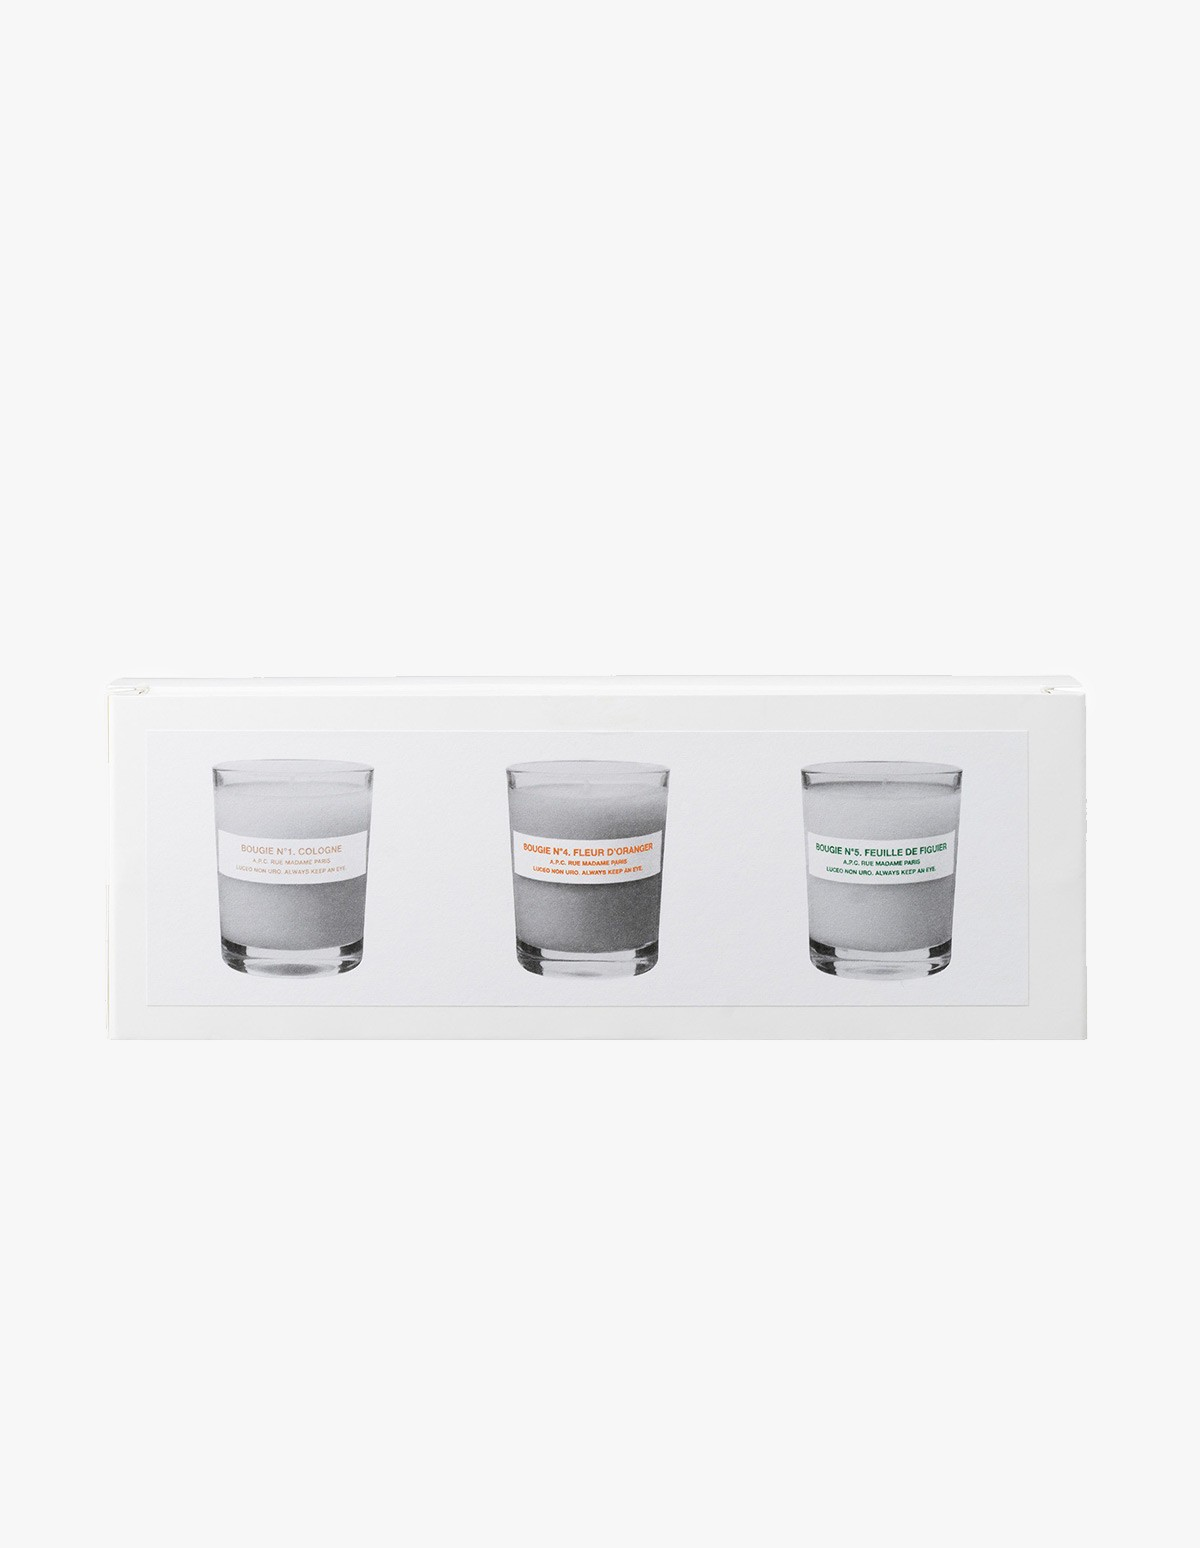 A.P.C. Box of Small Candles 1.4.5. in